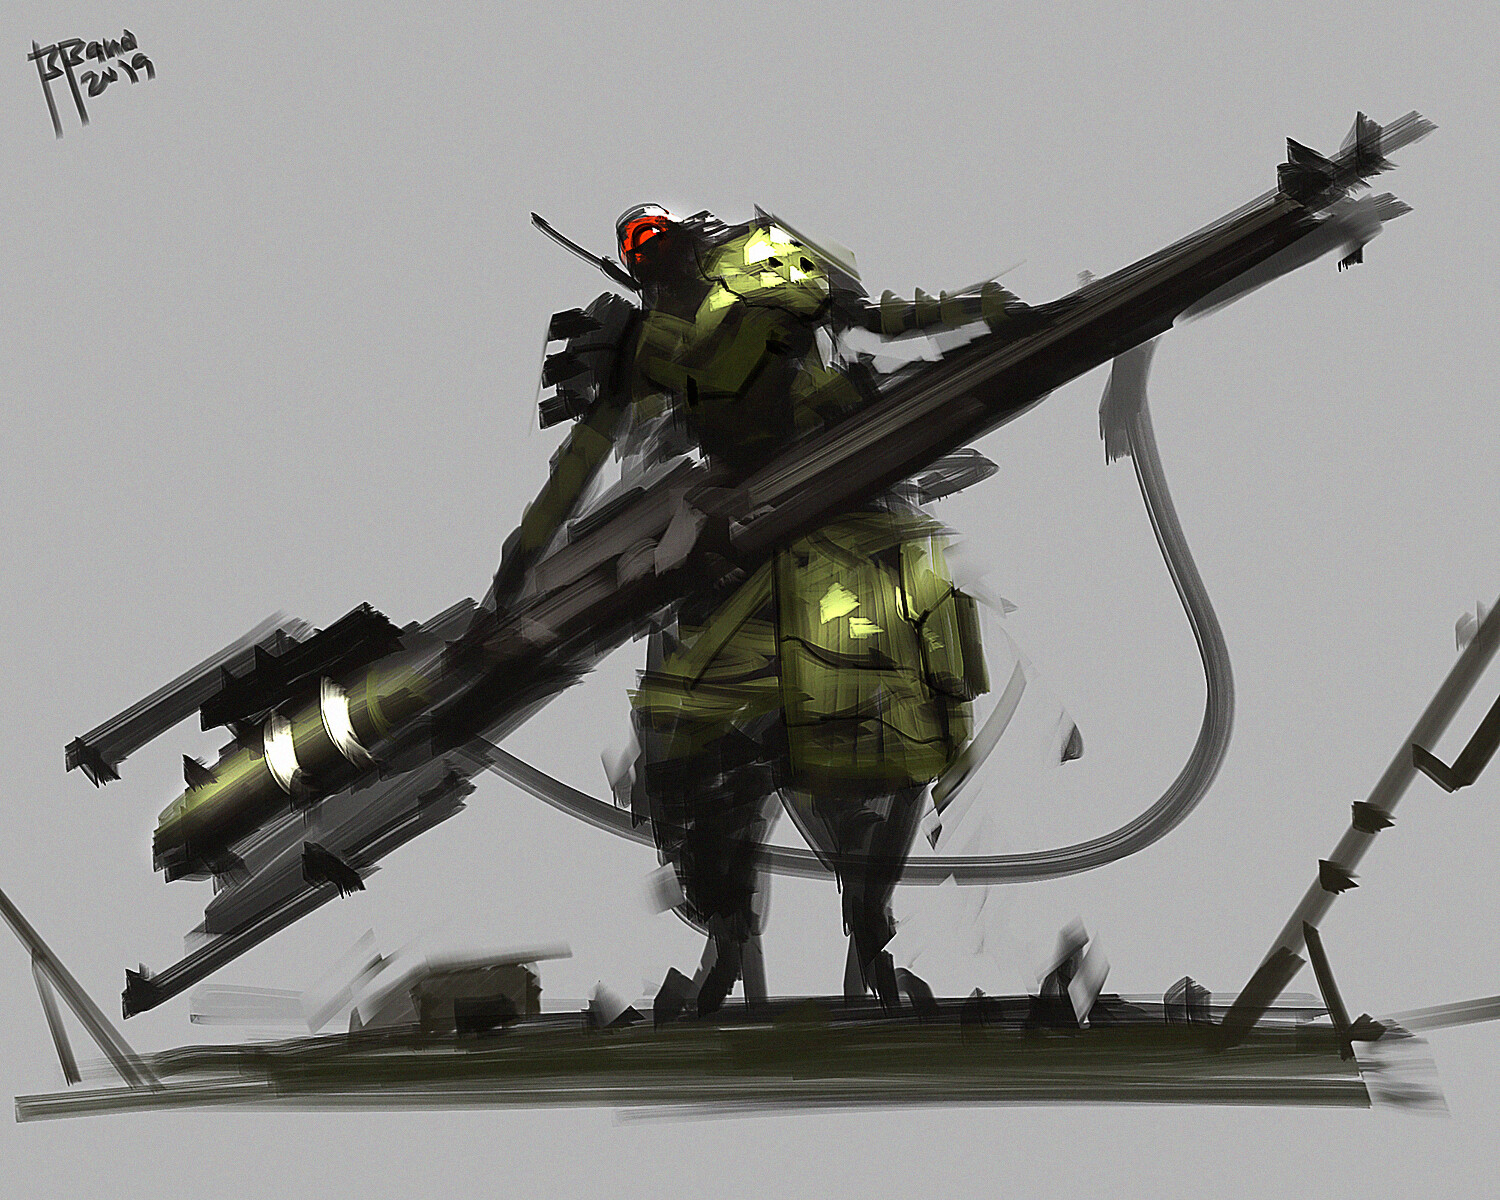 Benedick bana destroyer lors